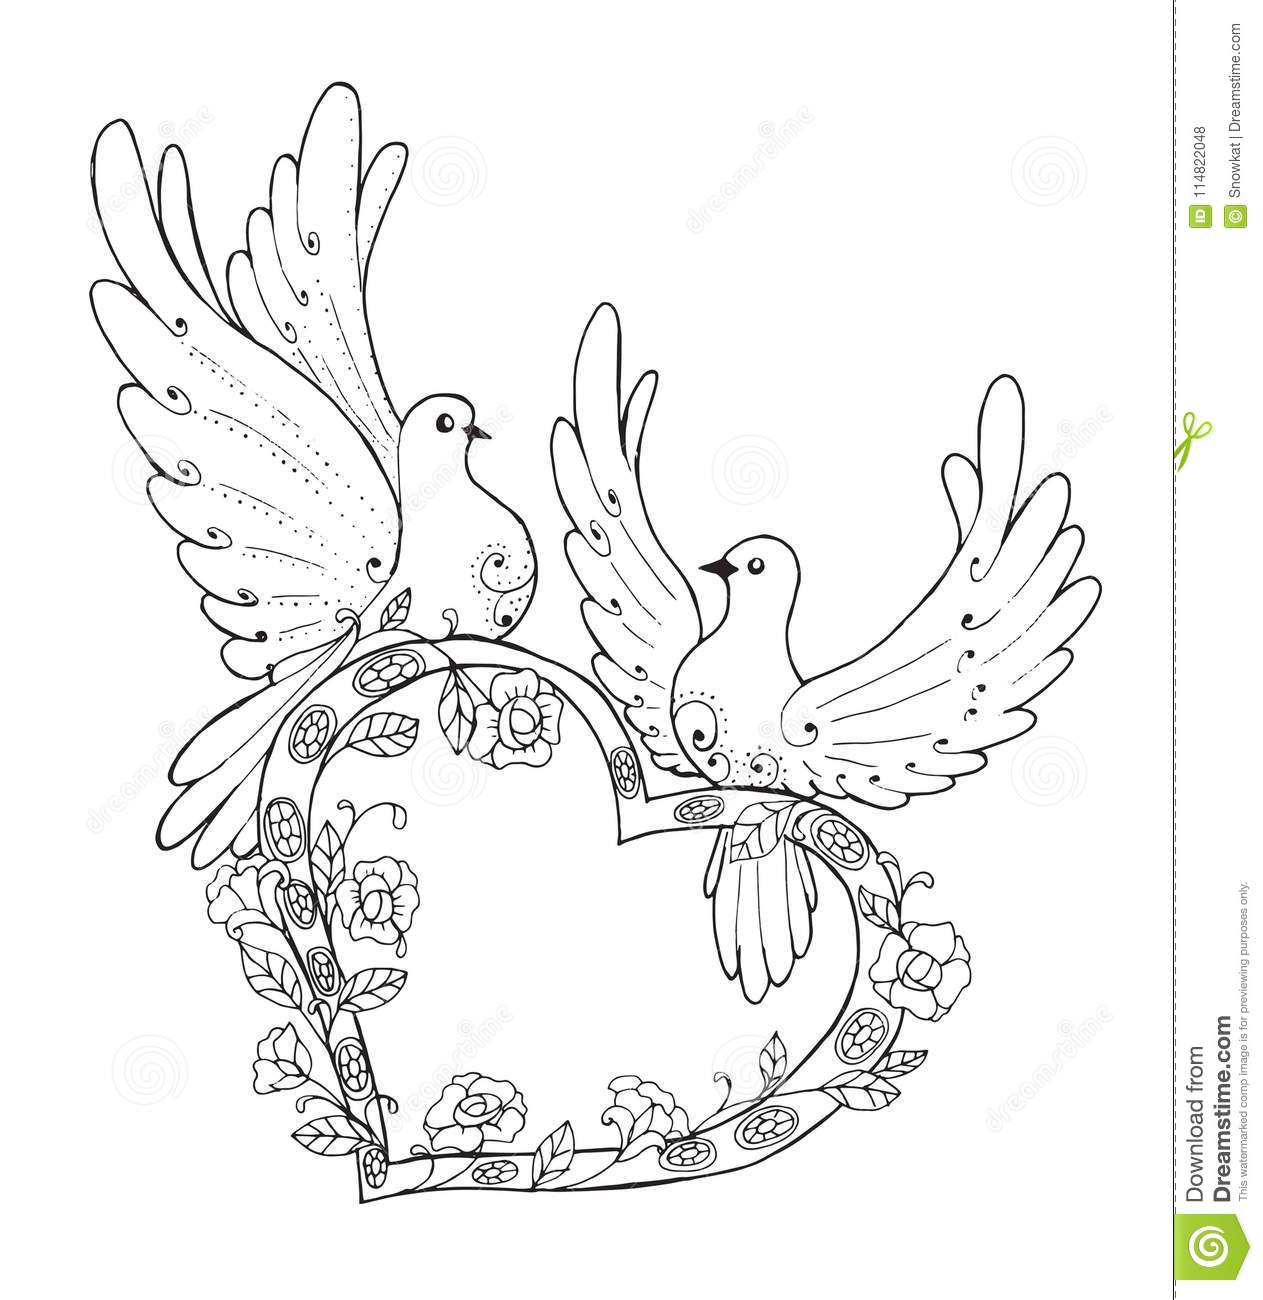 Outline drawing for coloring. Coloring book for kids and adults. Stylized  birds and heart. Beautiful pattern for printing on postcards and covers.